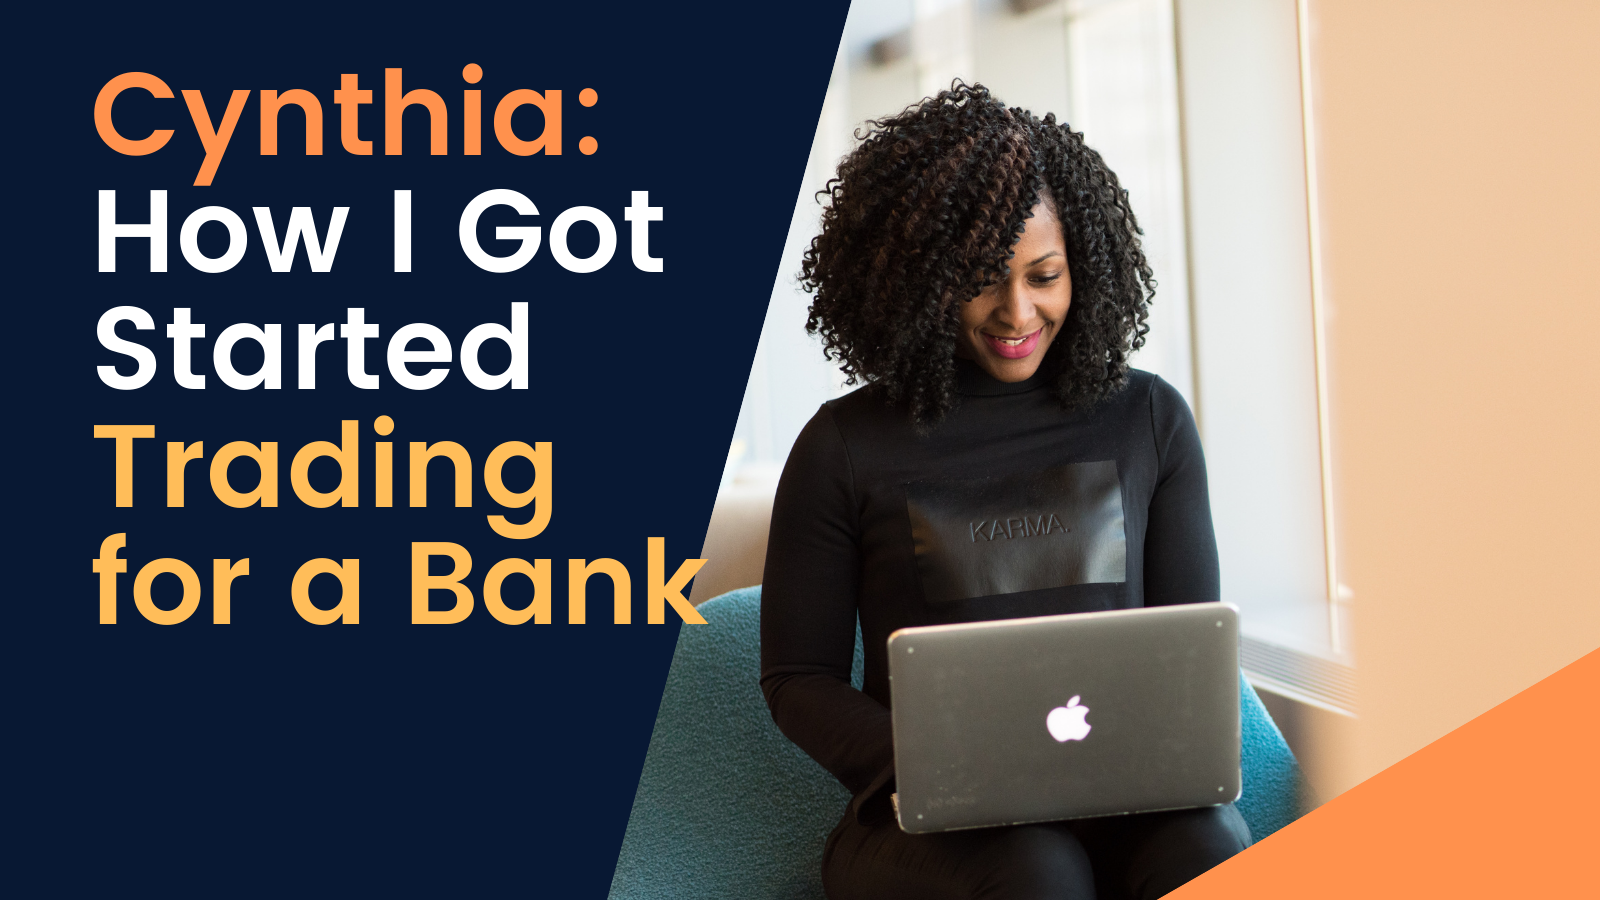 How I Got Started Trading for a Bank